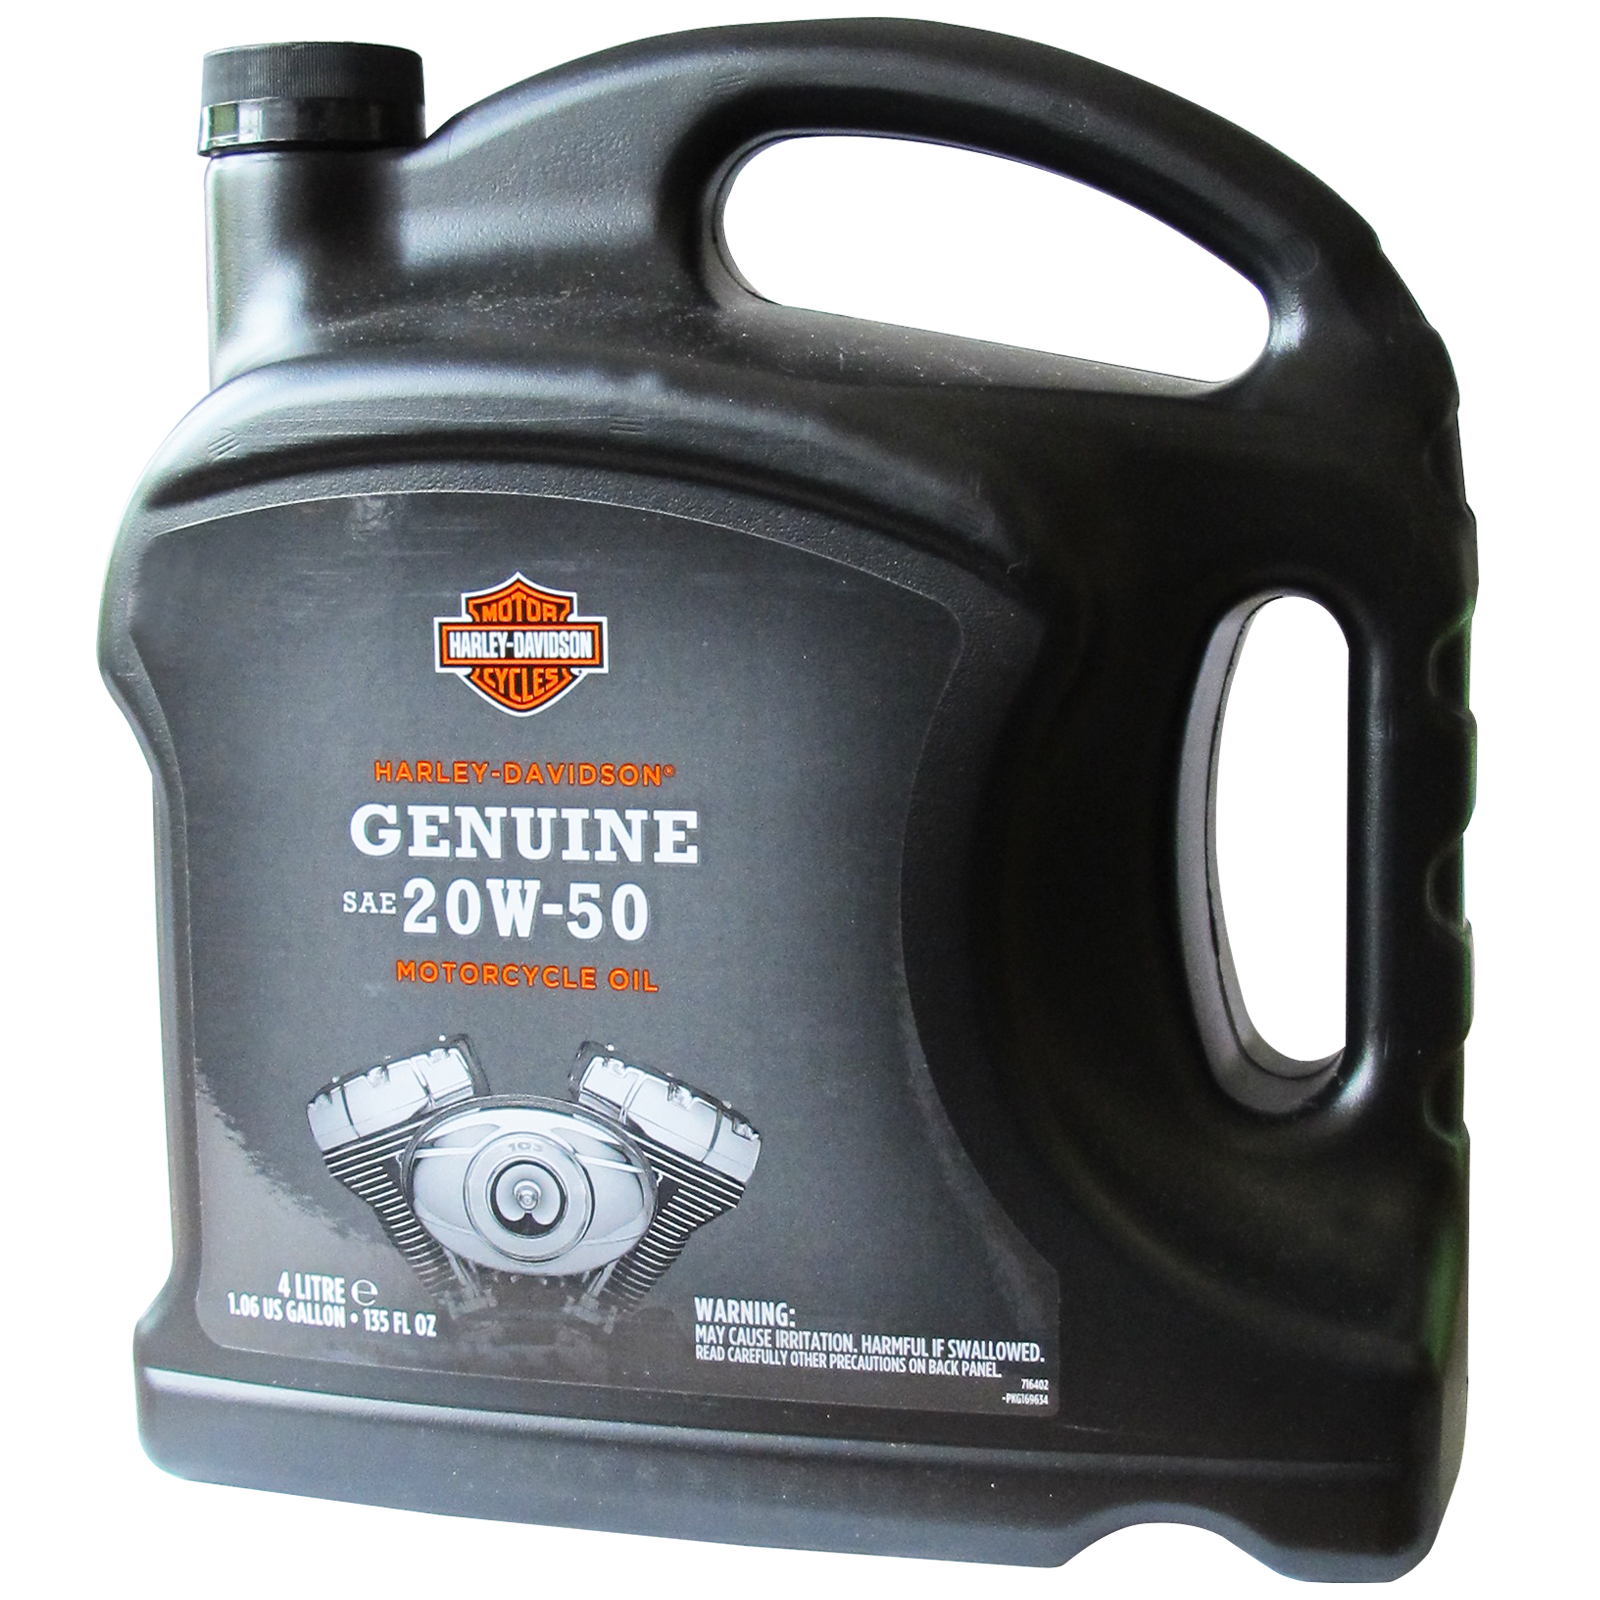 Genuine harley davidson h d 360 motorcycle oil 20w50 4 for 20w50 motor oil temperature range